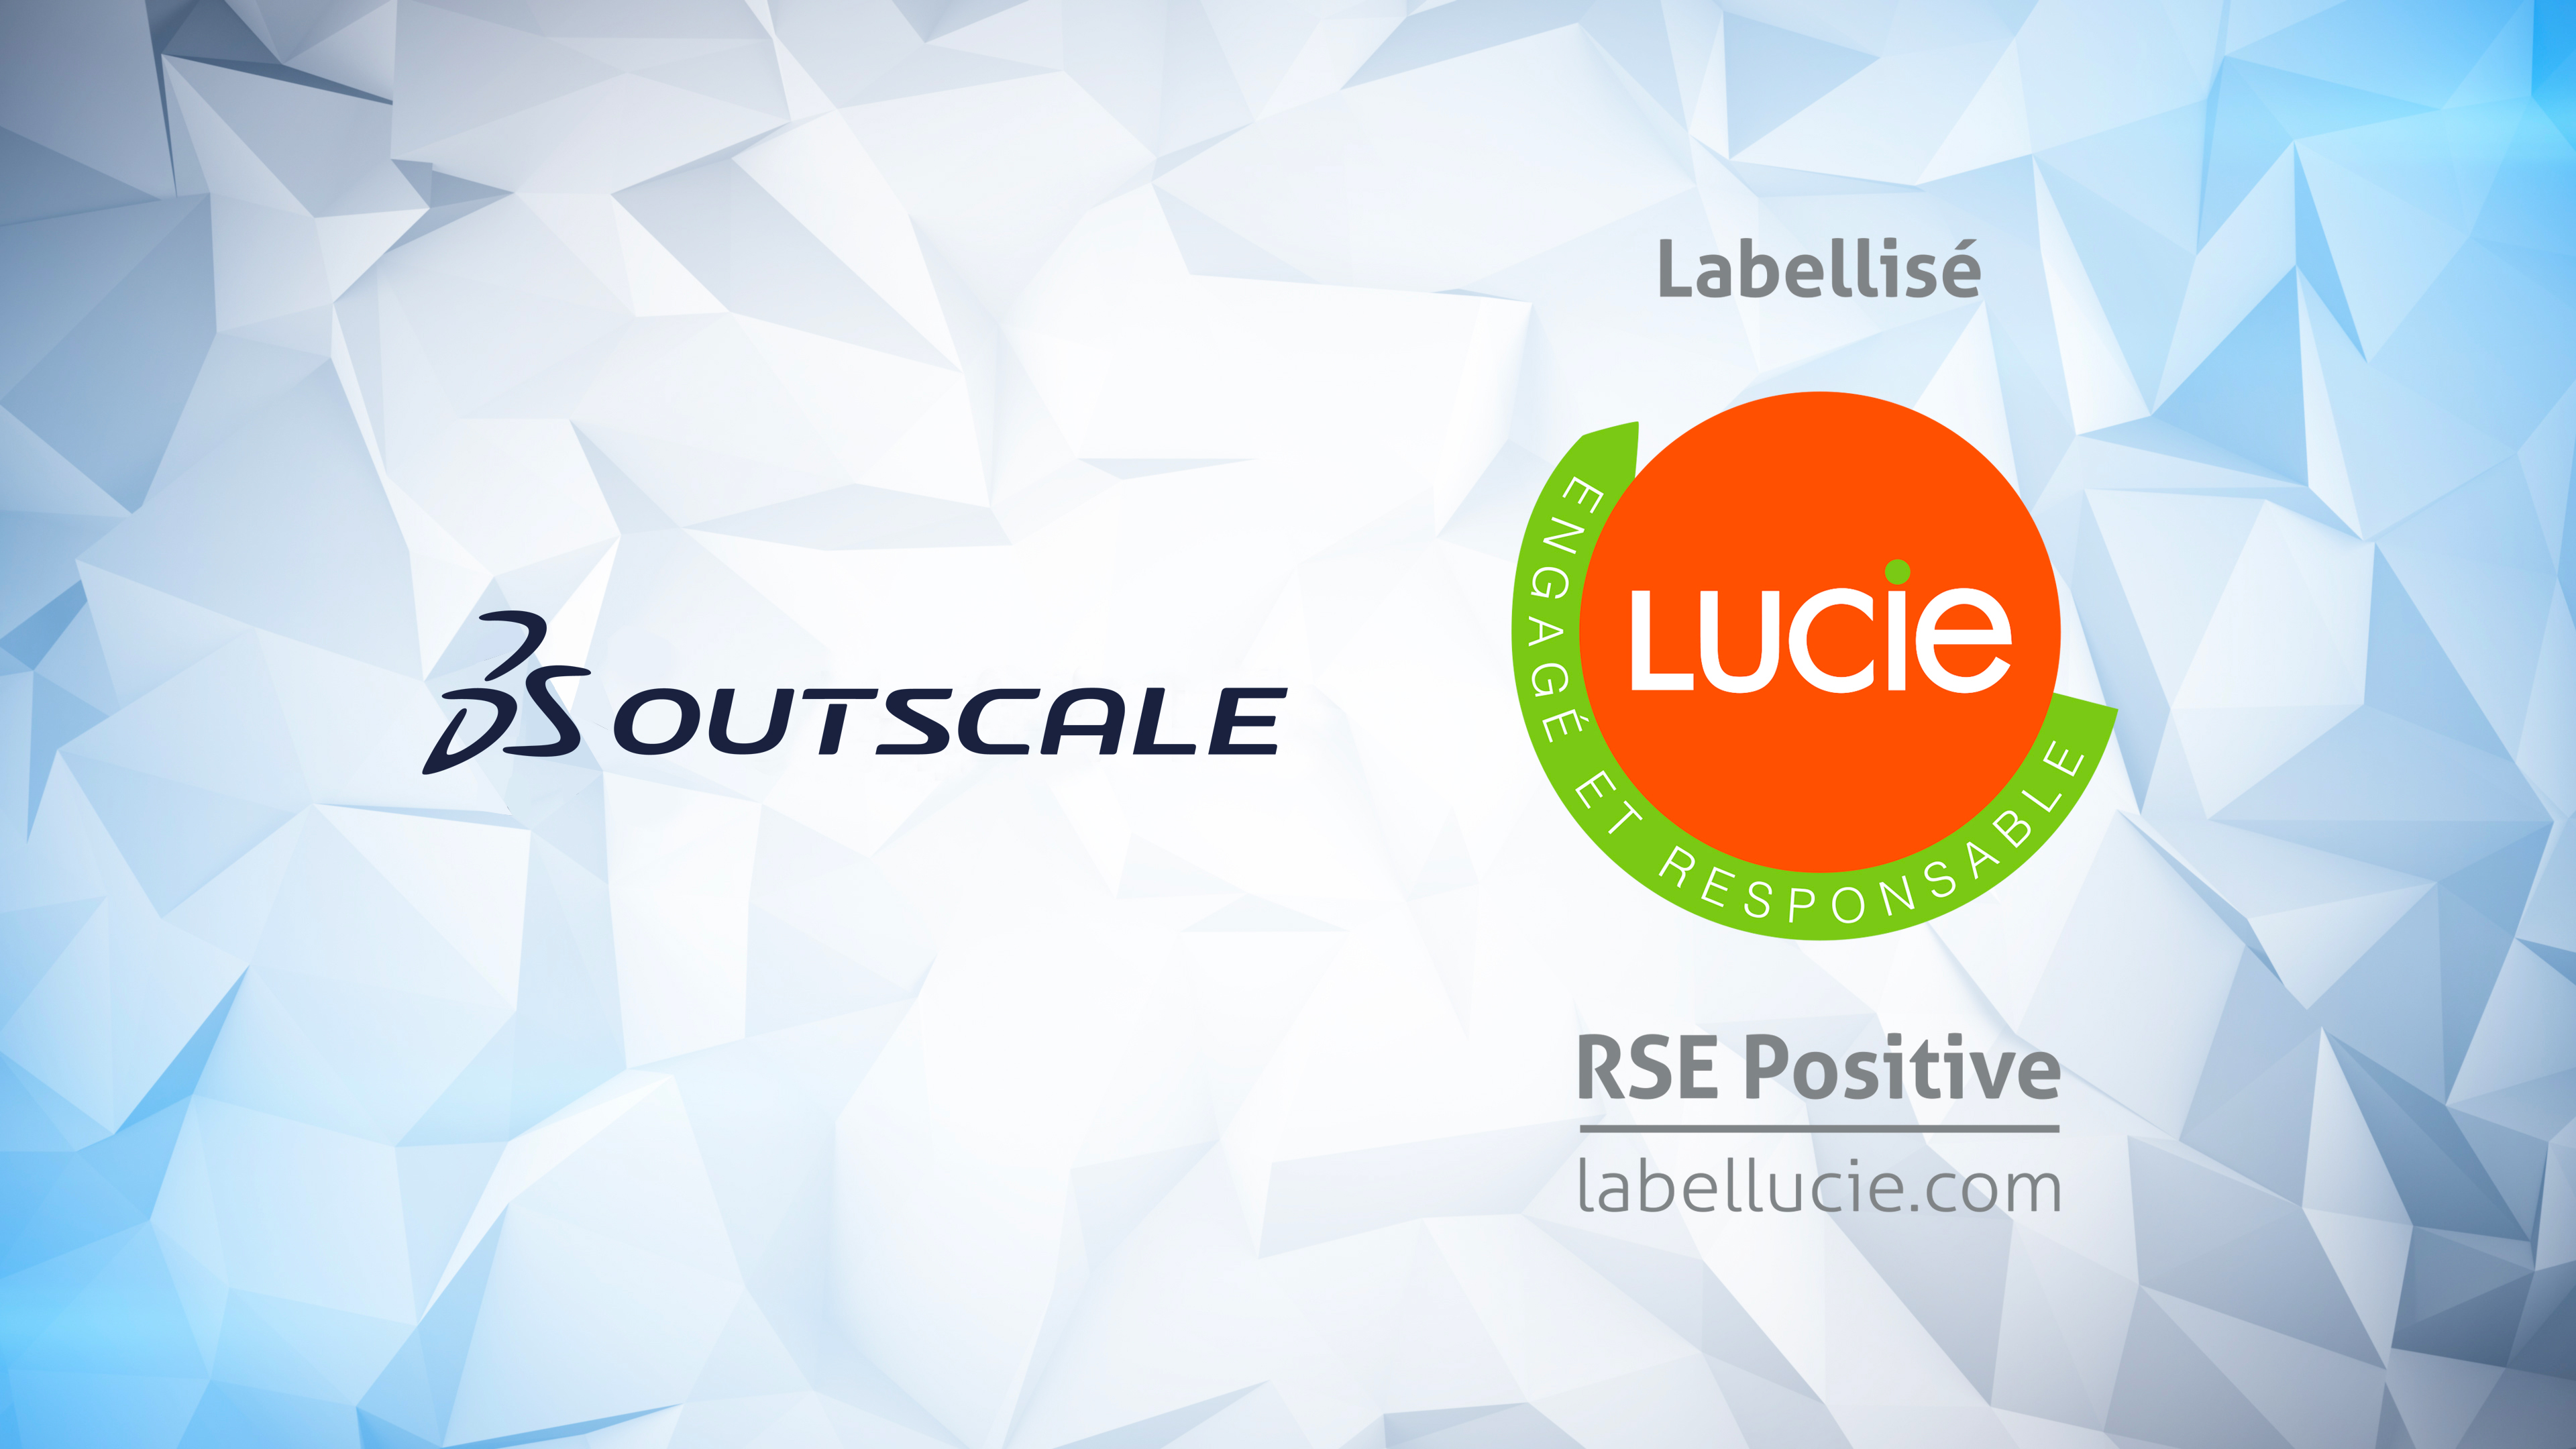 RSE - Outscale Cloud - label LUCIE